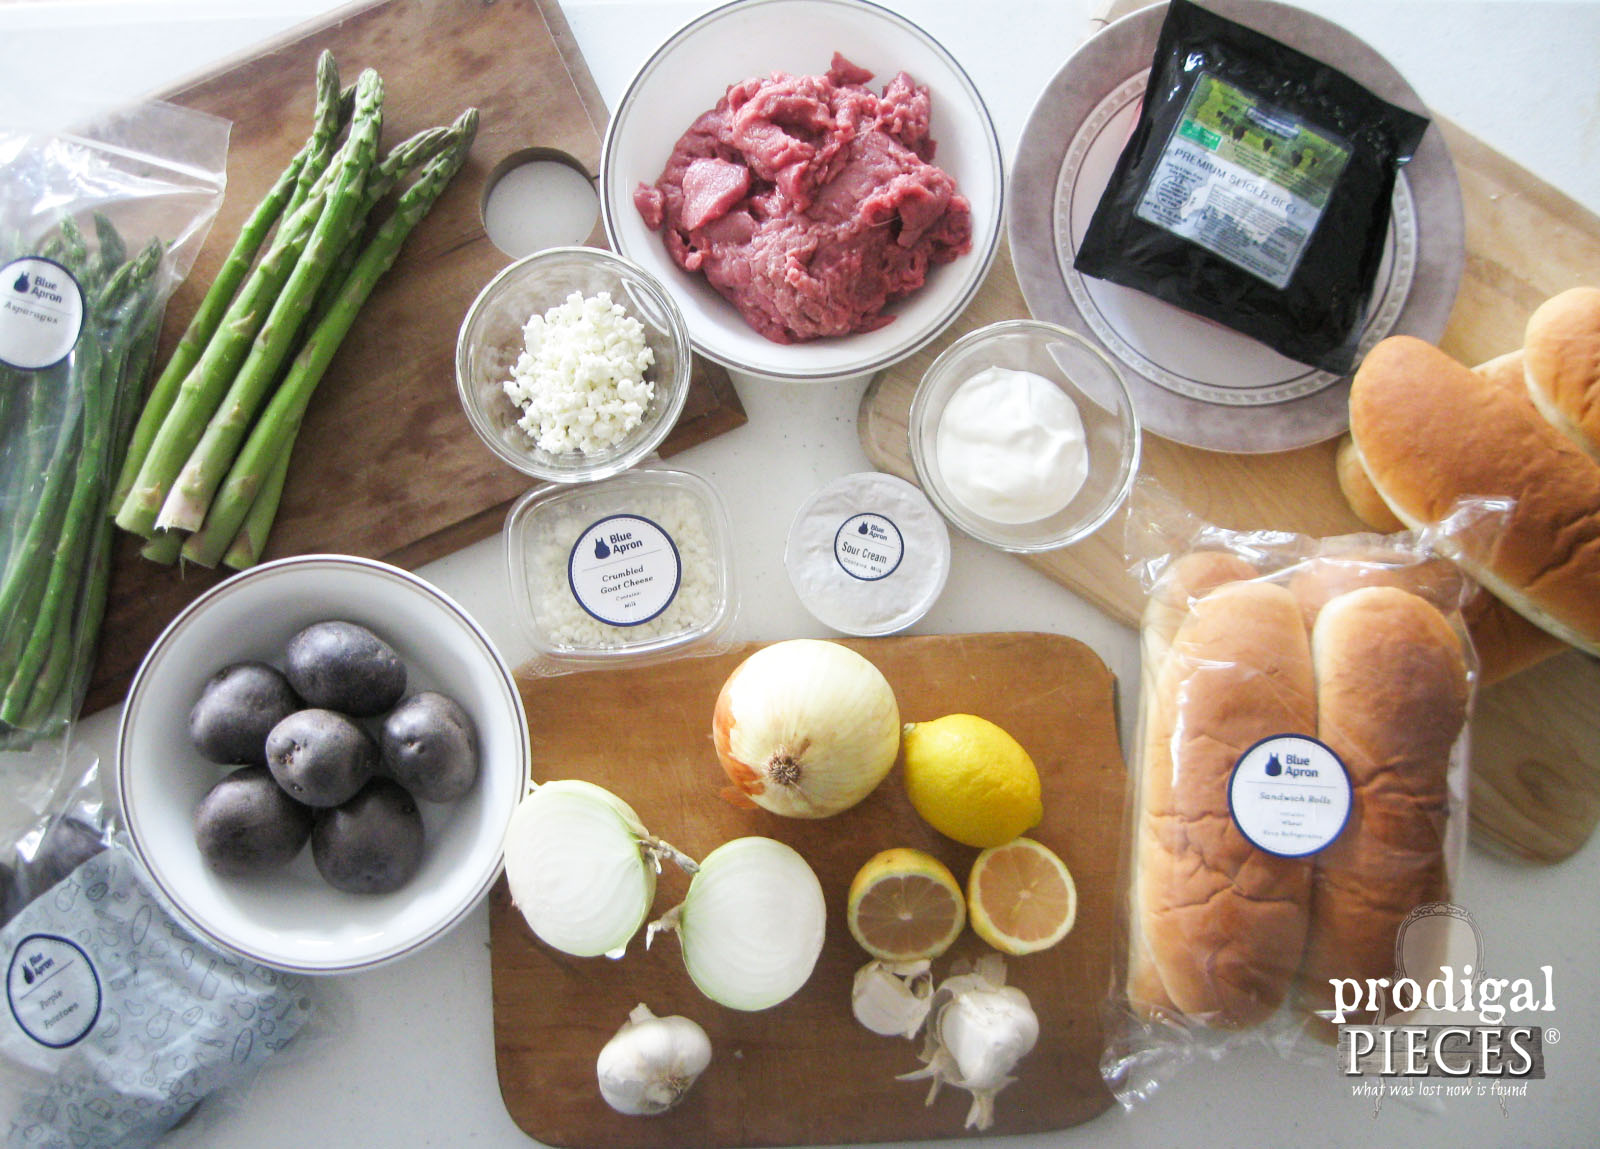 Blue Apron Meal Service for a Family of 8 | Prodigal Pieces | www.prodigalpieces.com